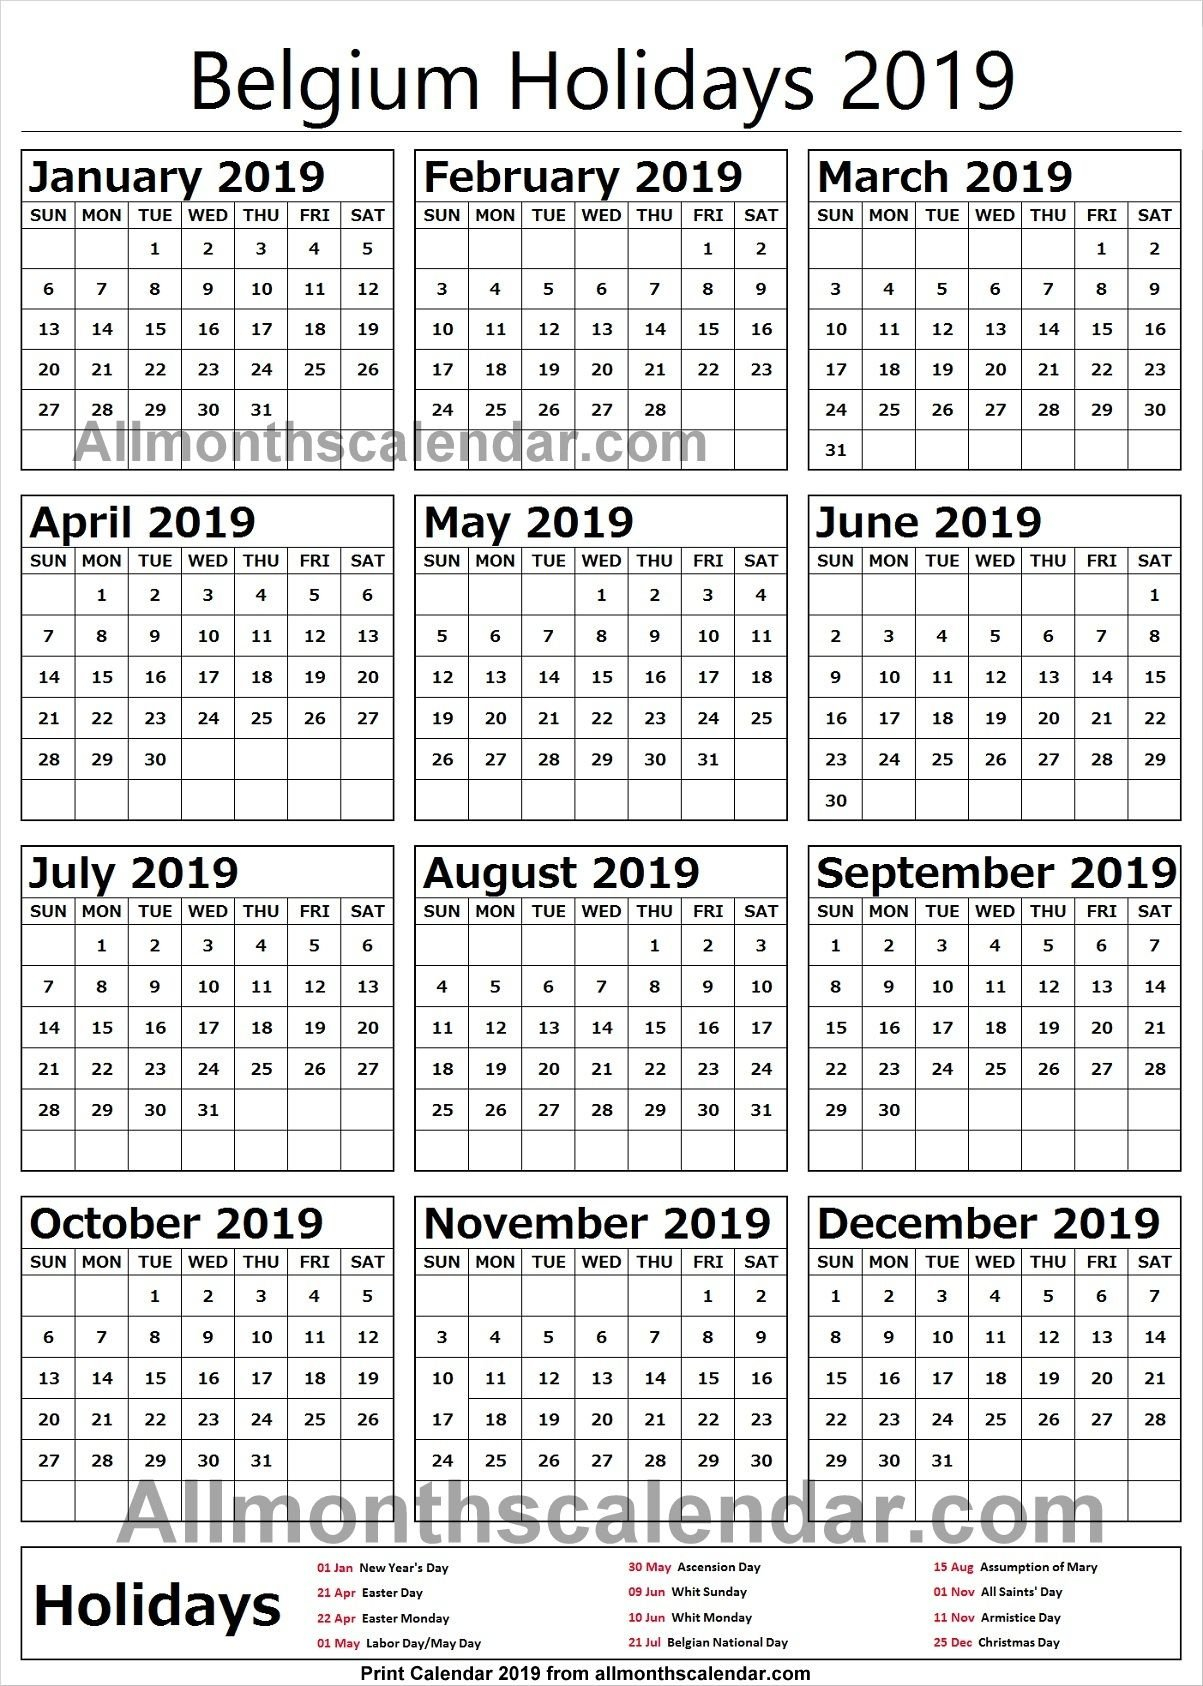 Belgium Holiday List 2019 | Holidays Calendar 2019 In 2019 | Holiday Calendar 2019 Belgium